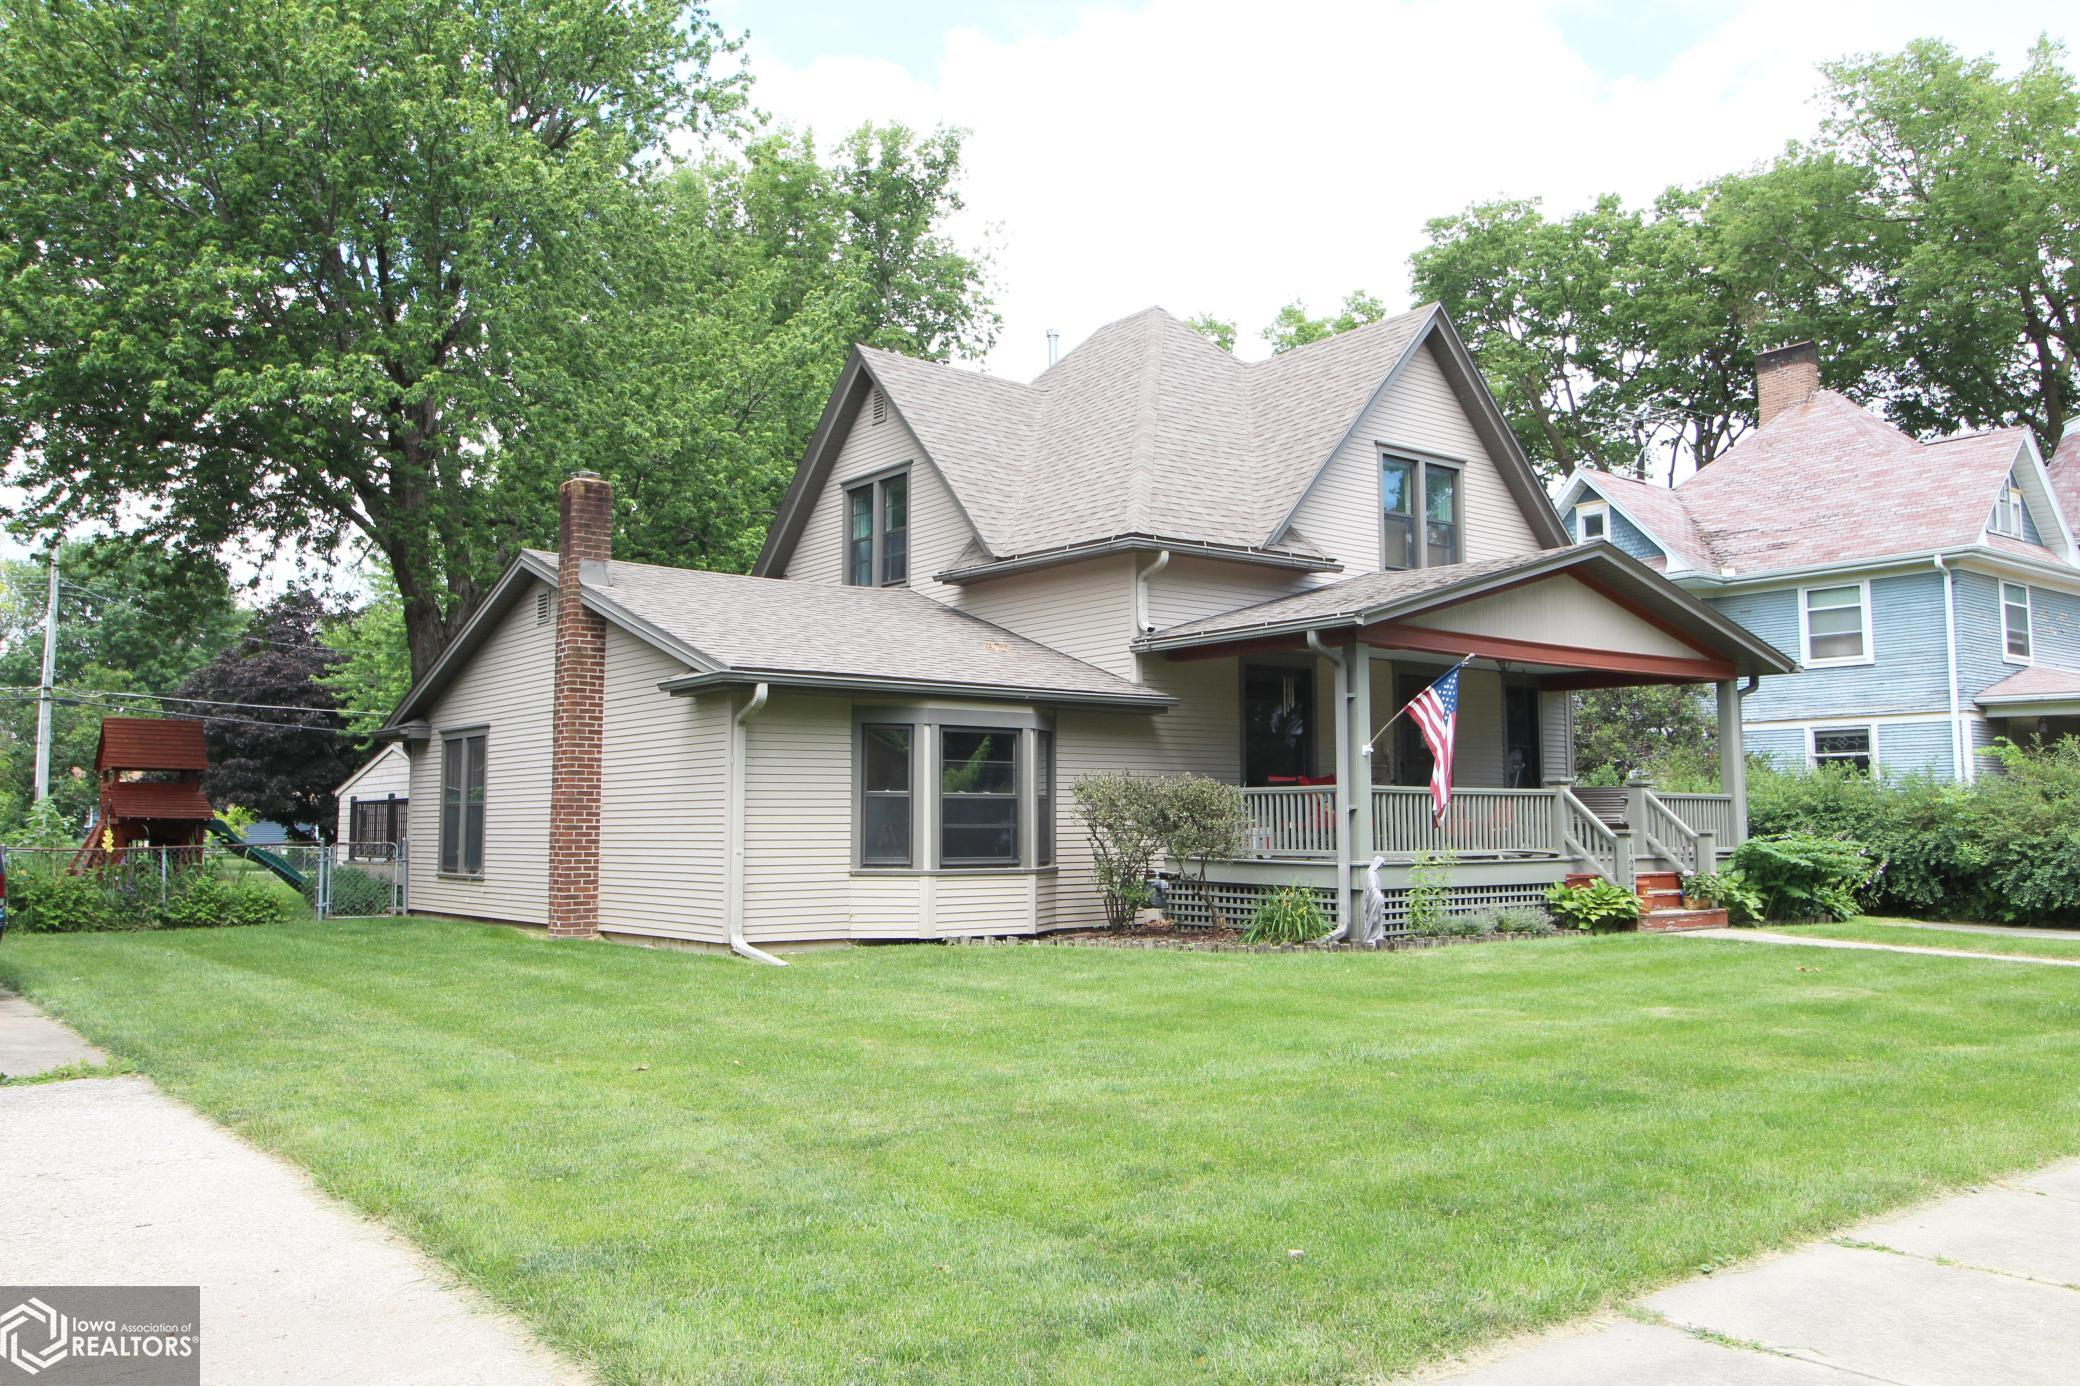 1221 Summer, Grinnell, Iowa 50112, 3 Bedrooms Bedrooms, ,1 BathroomBathrooms,Single Family,For Sale,Summer,5741341